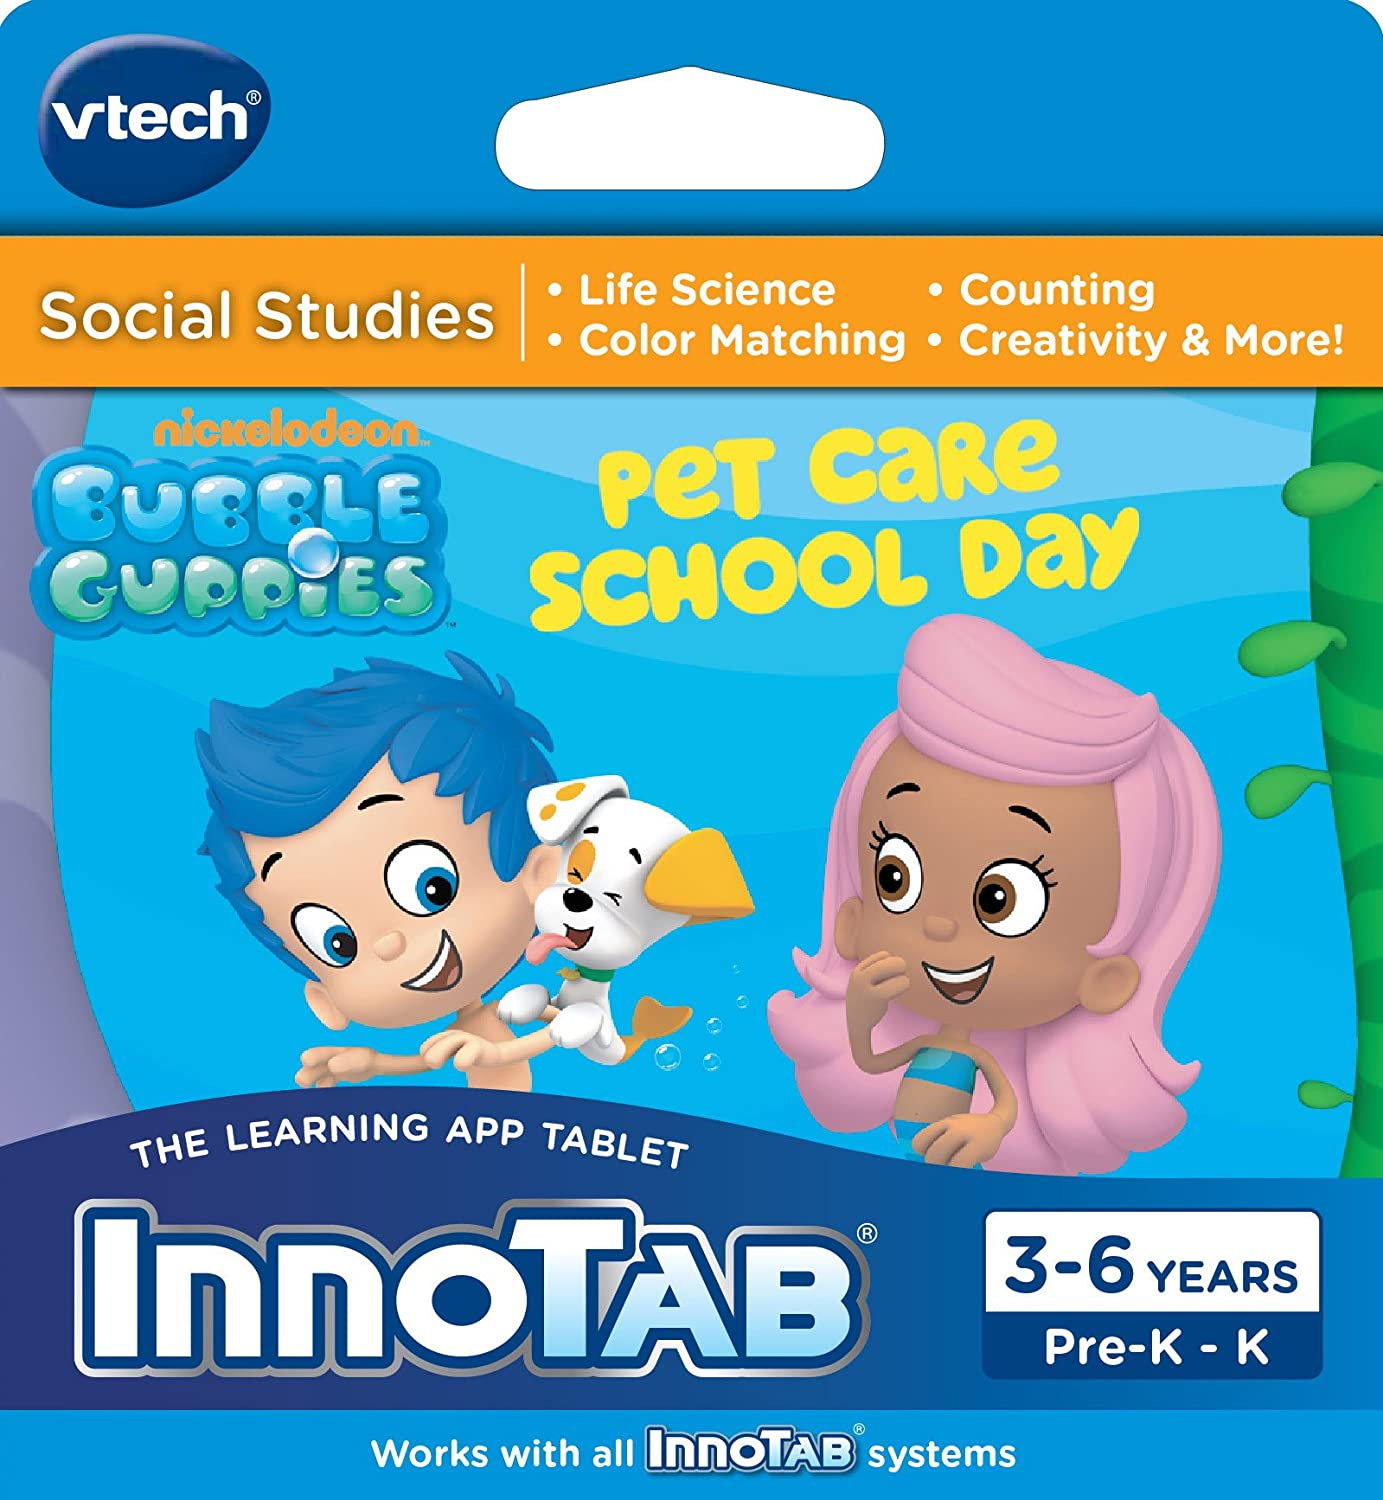 amazon com vtech innotab software bubble guppies toys u0026 games